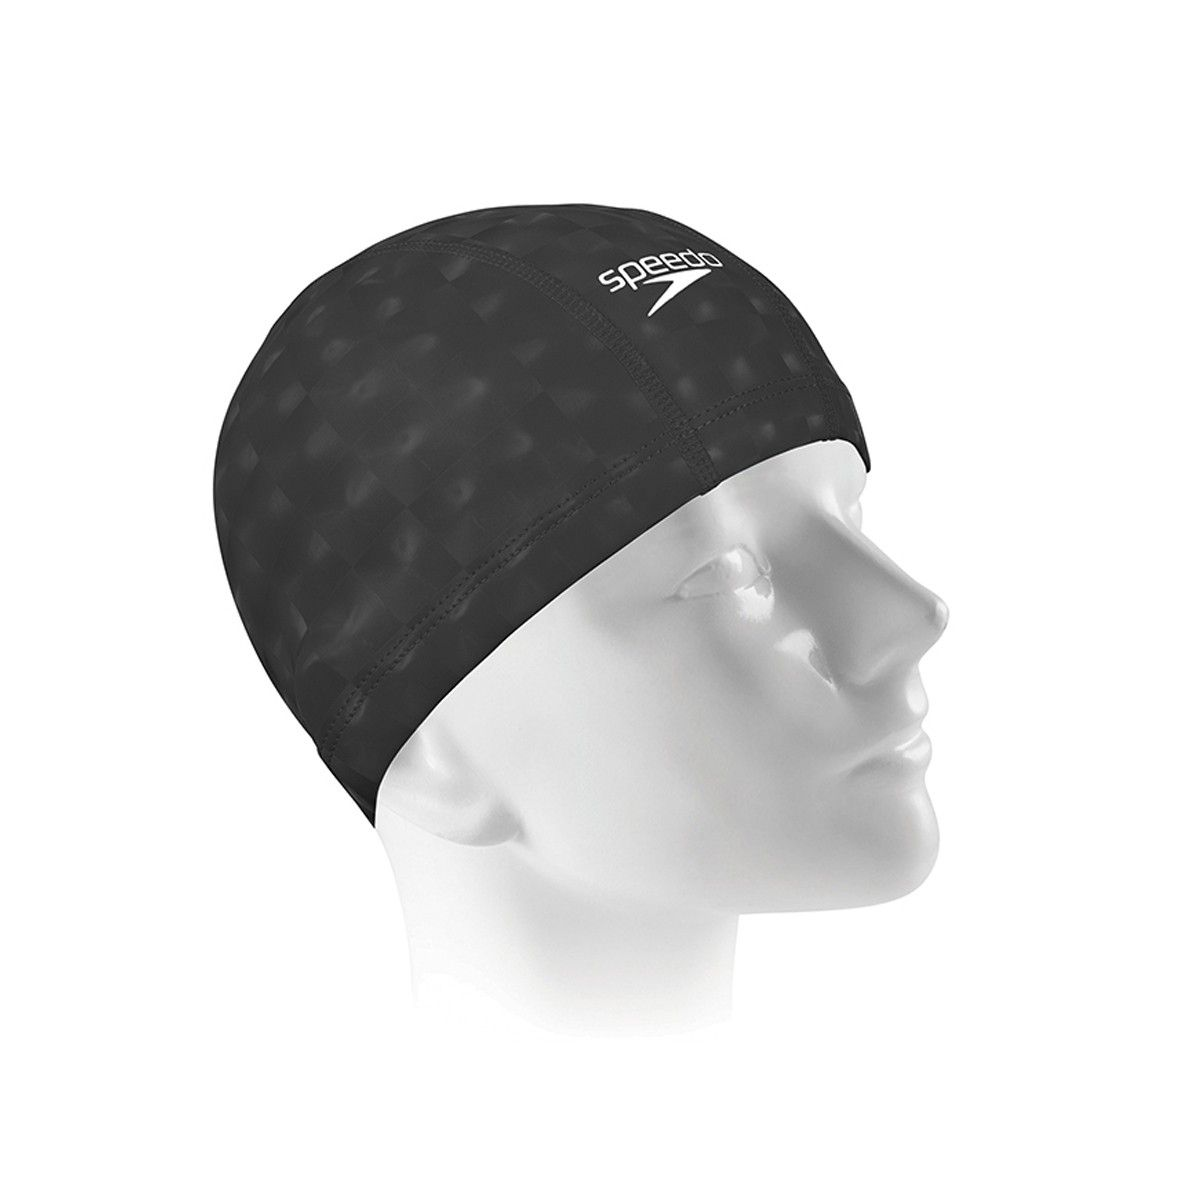 Touca Speedo Comfort Cap 3D - Preto - Point do Esporte 904f565abd35f